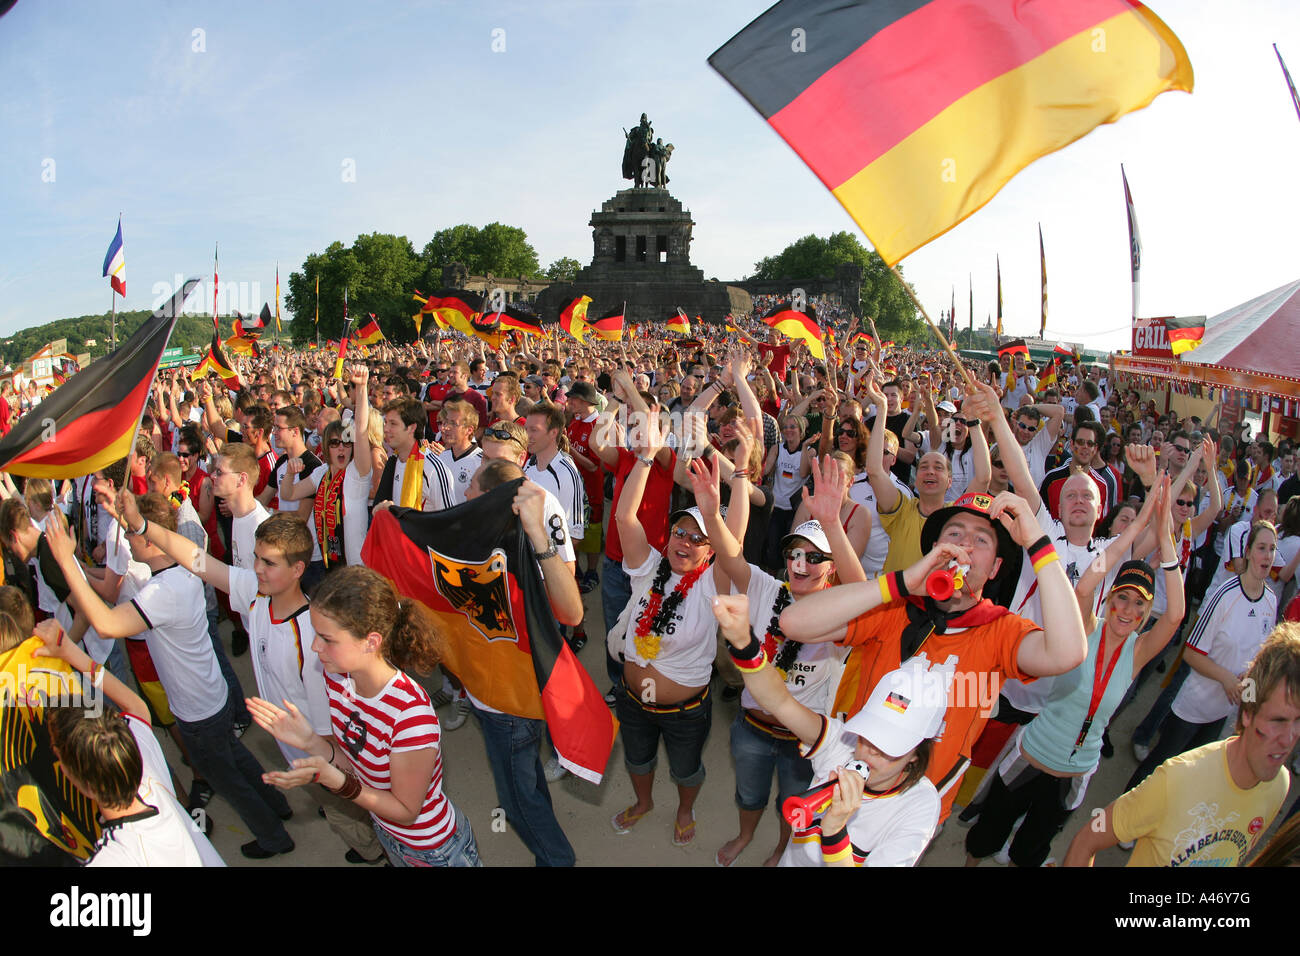 Thousands of spectators at the o public viewing of the opening of soccer world-cup 2006 at the German Corner, Koblenz - Stock Image